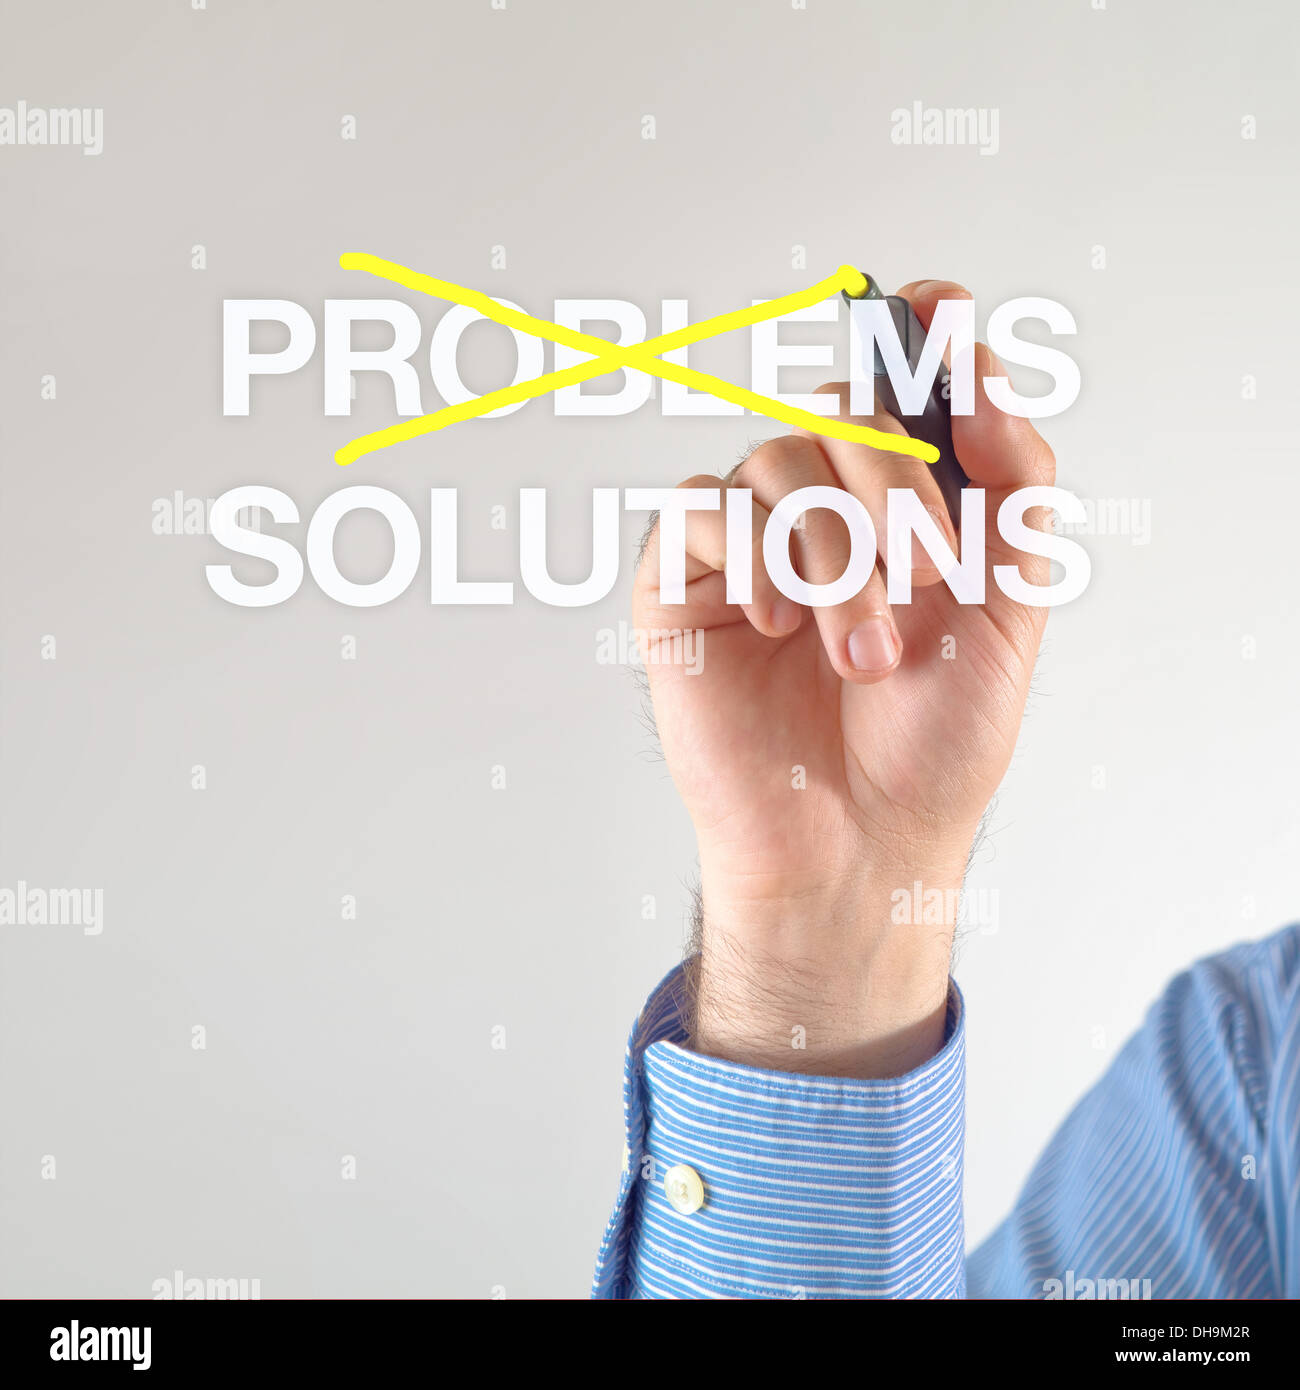 Solutions, not problems. Businessman crosses out problems for solutions with yellow marker pen on the screen - Stock Image